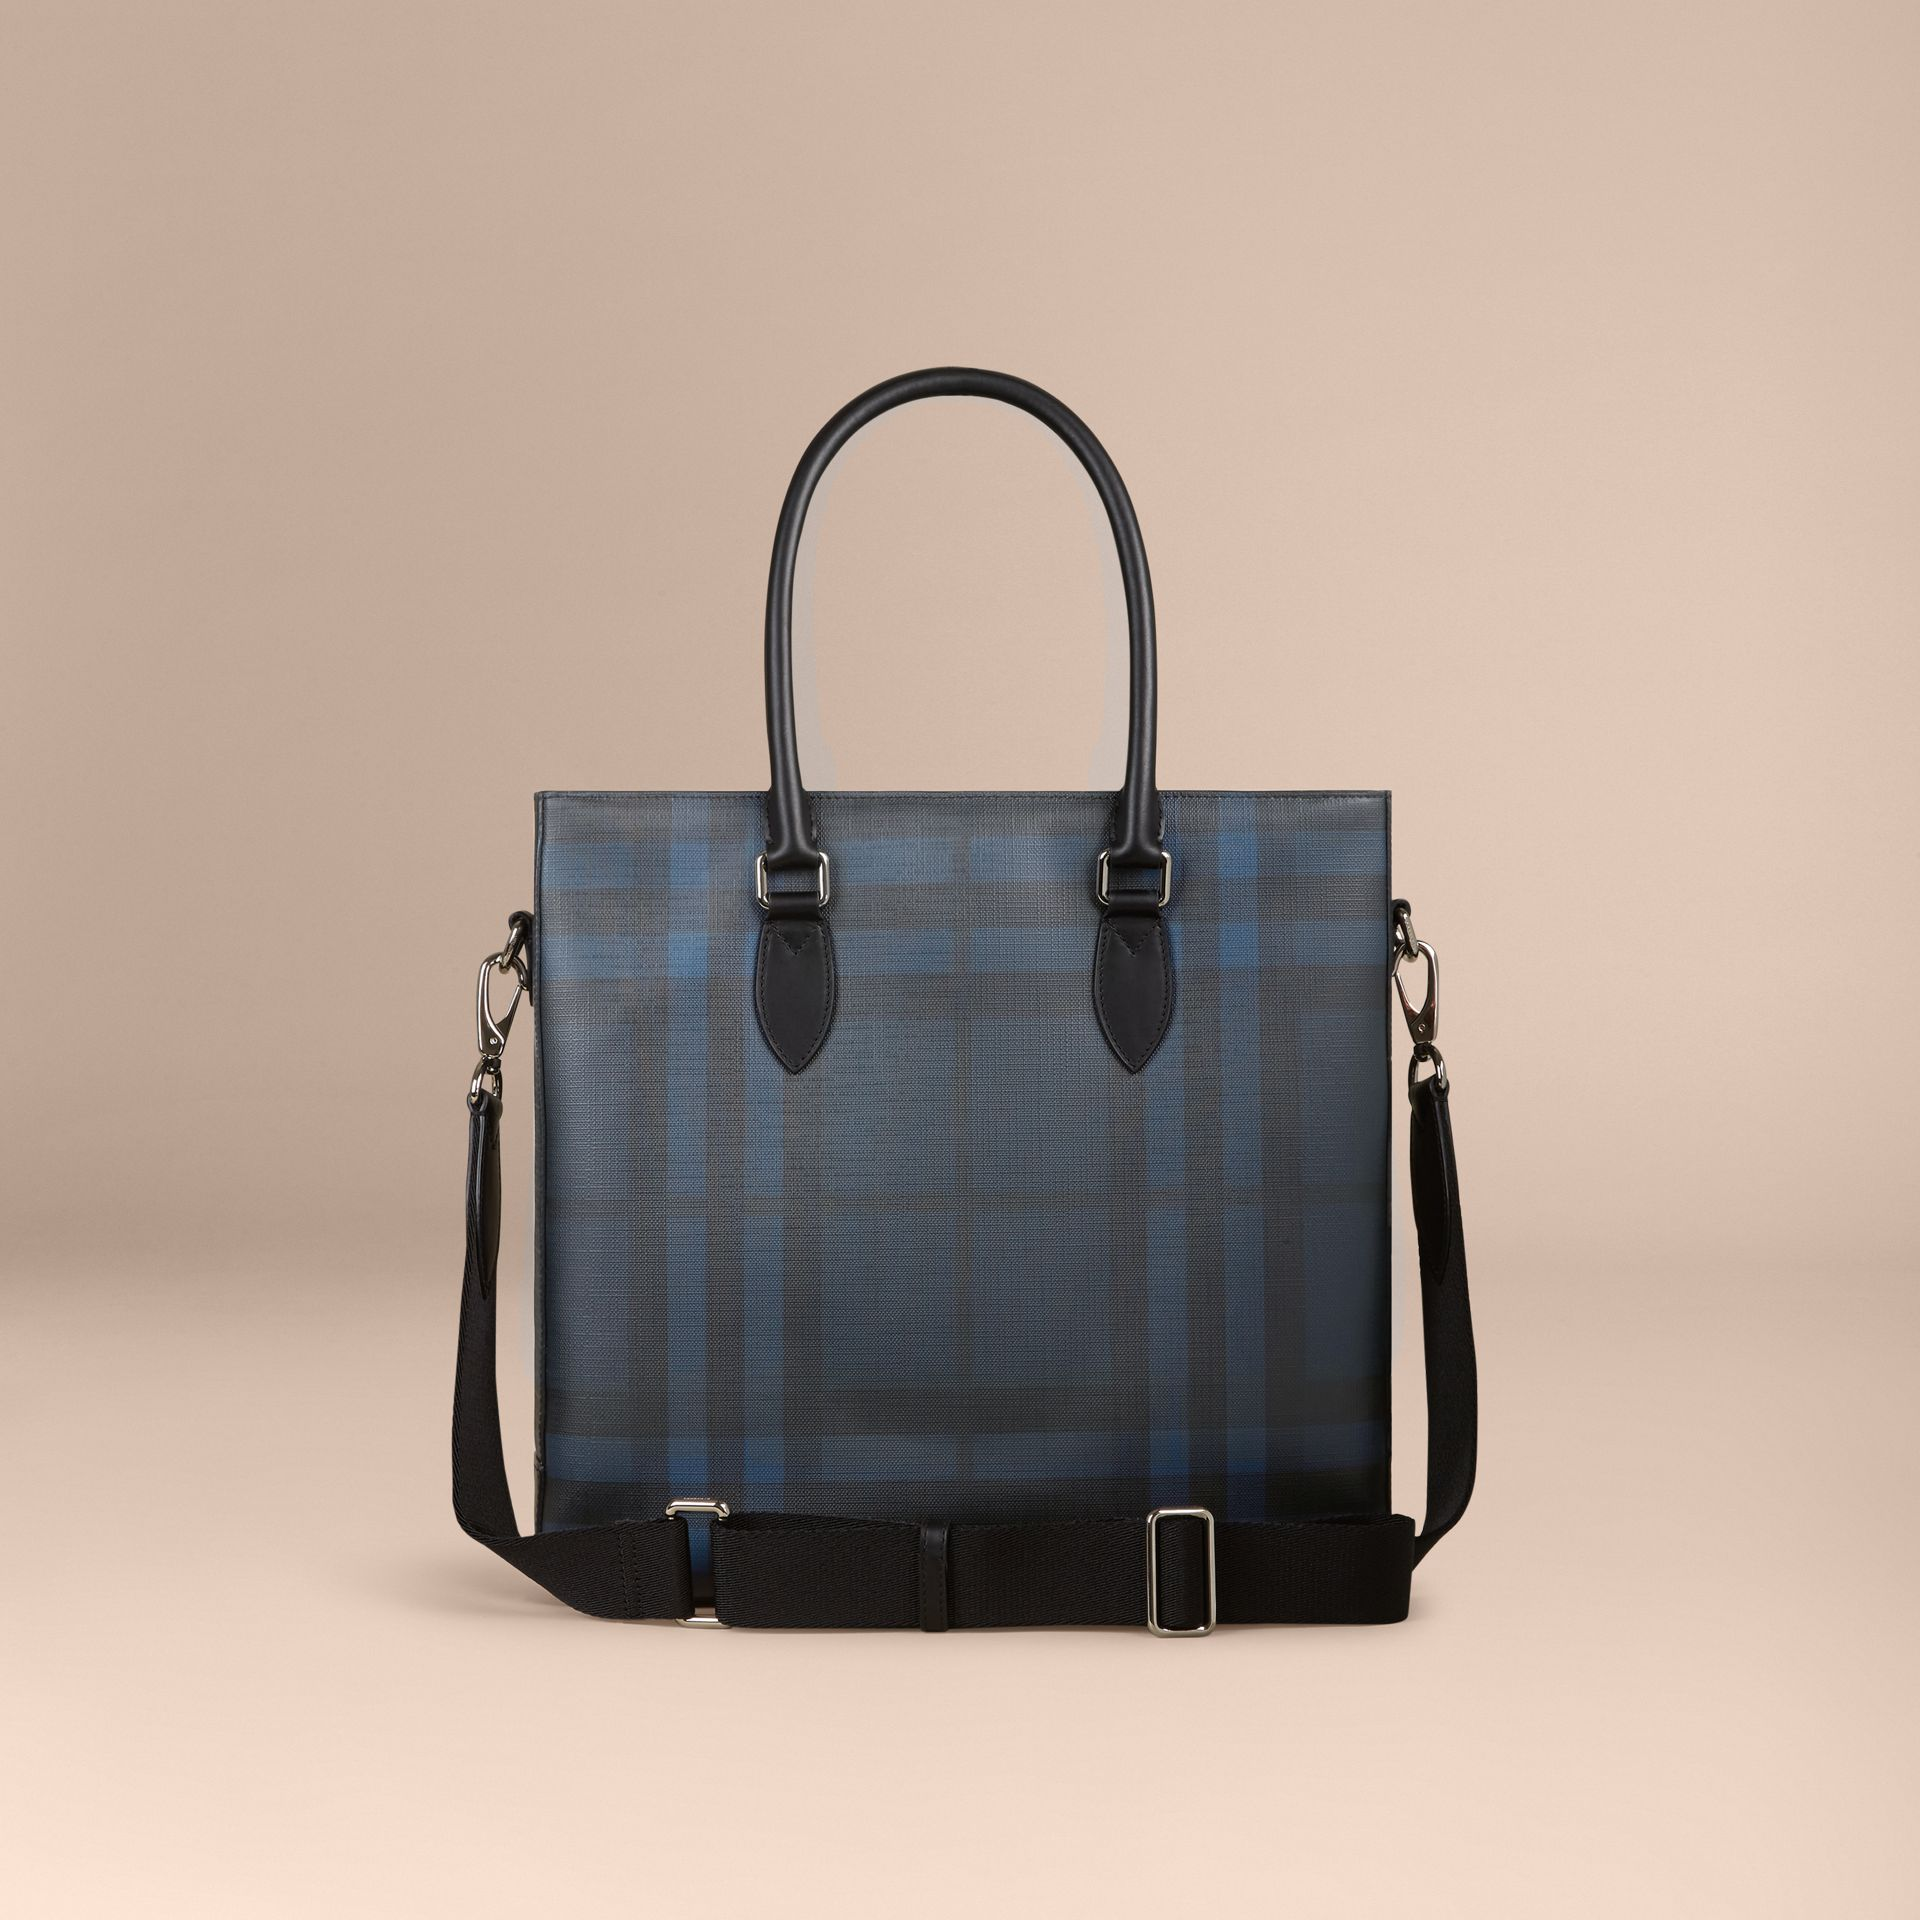 London Check Tote Bag in Navy/black - Men | Burberry Canada - gallery image 4